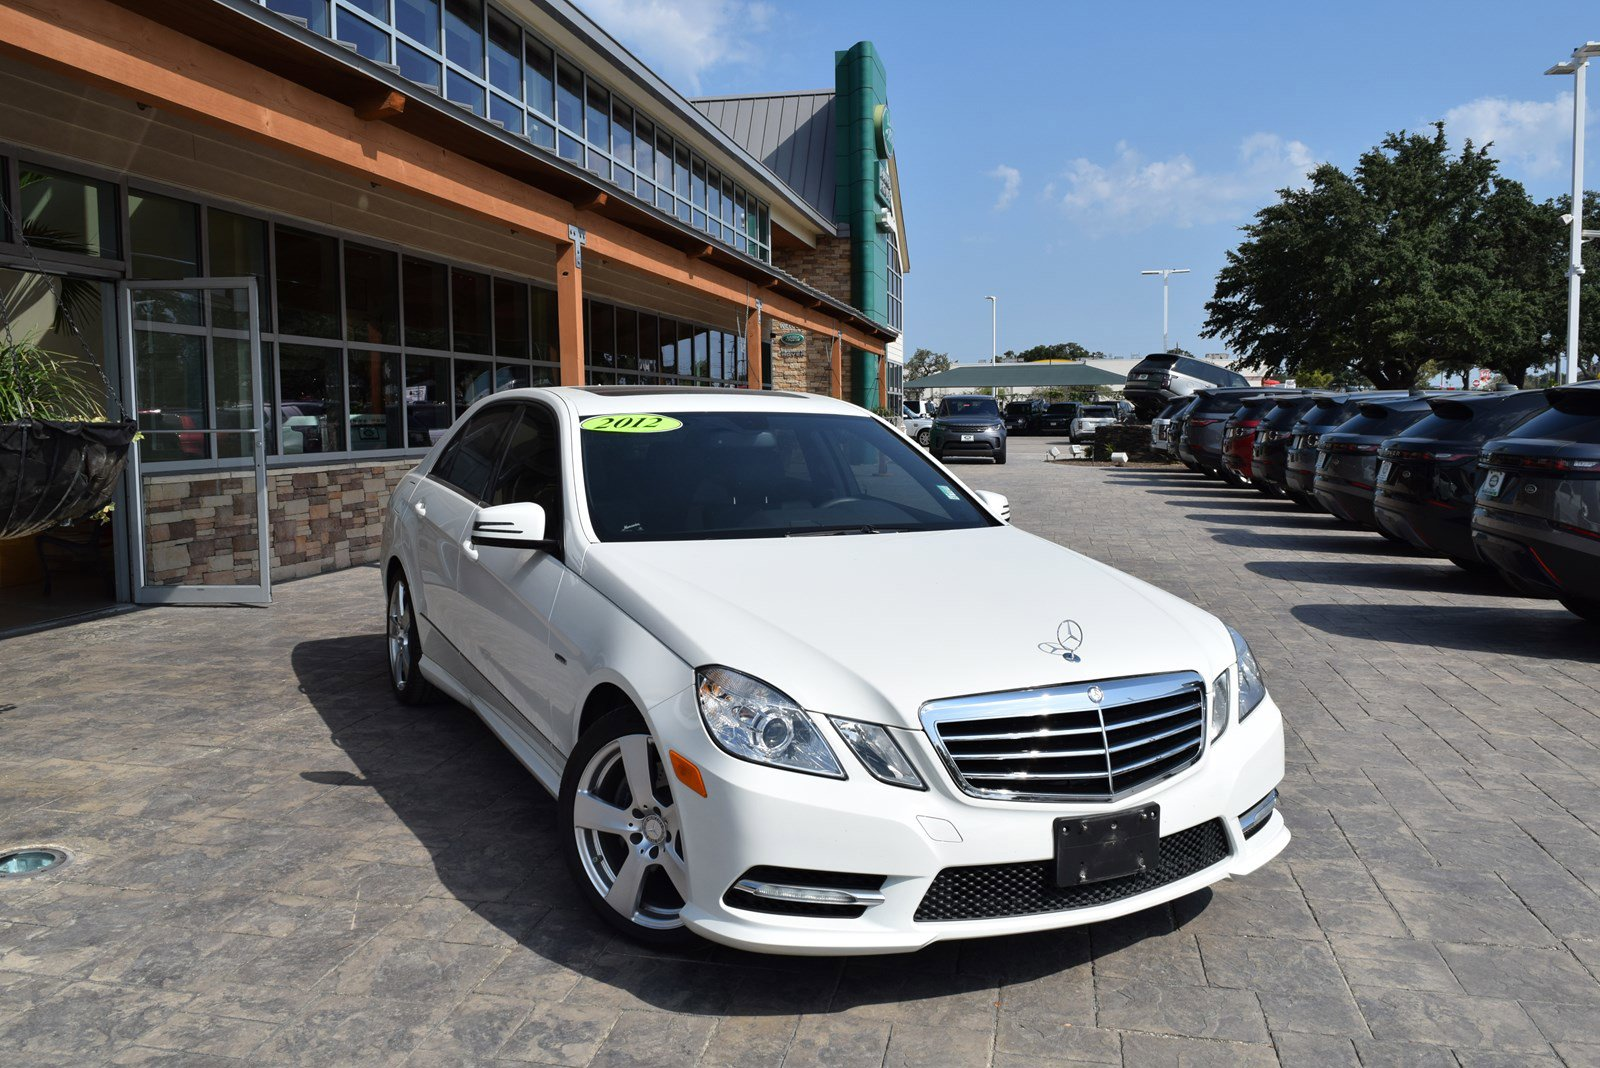 2012 Mercedes-Benz E 350 Sedan image